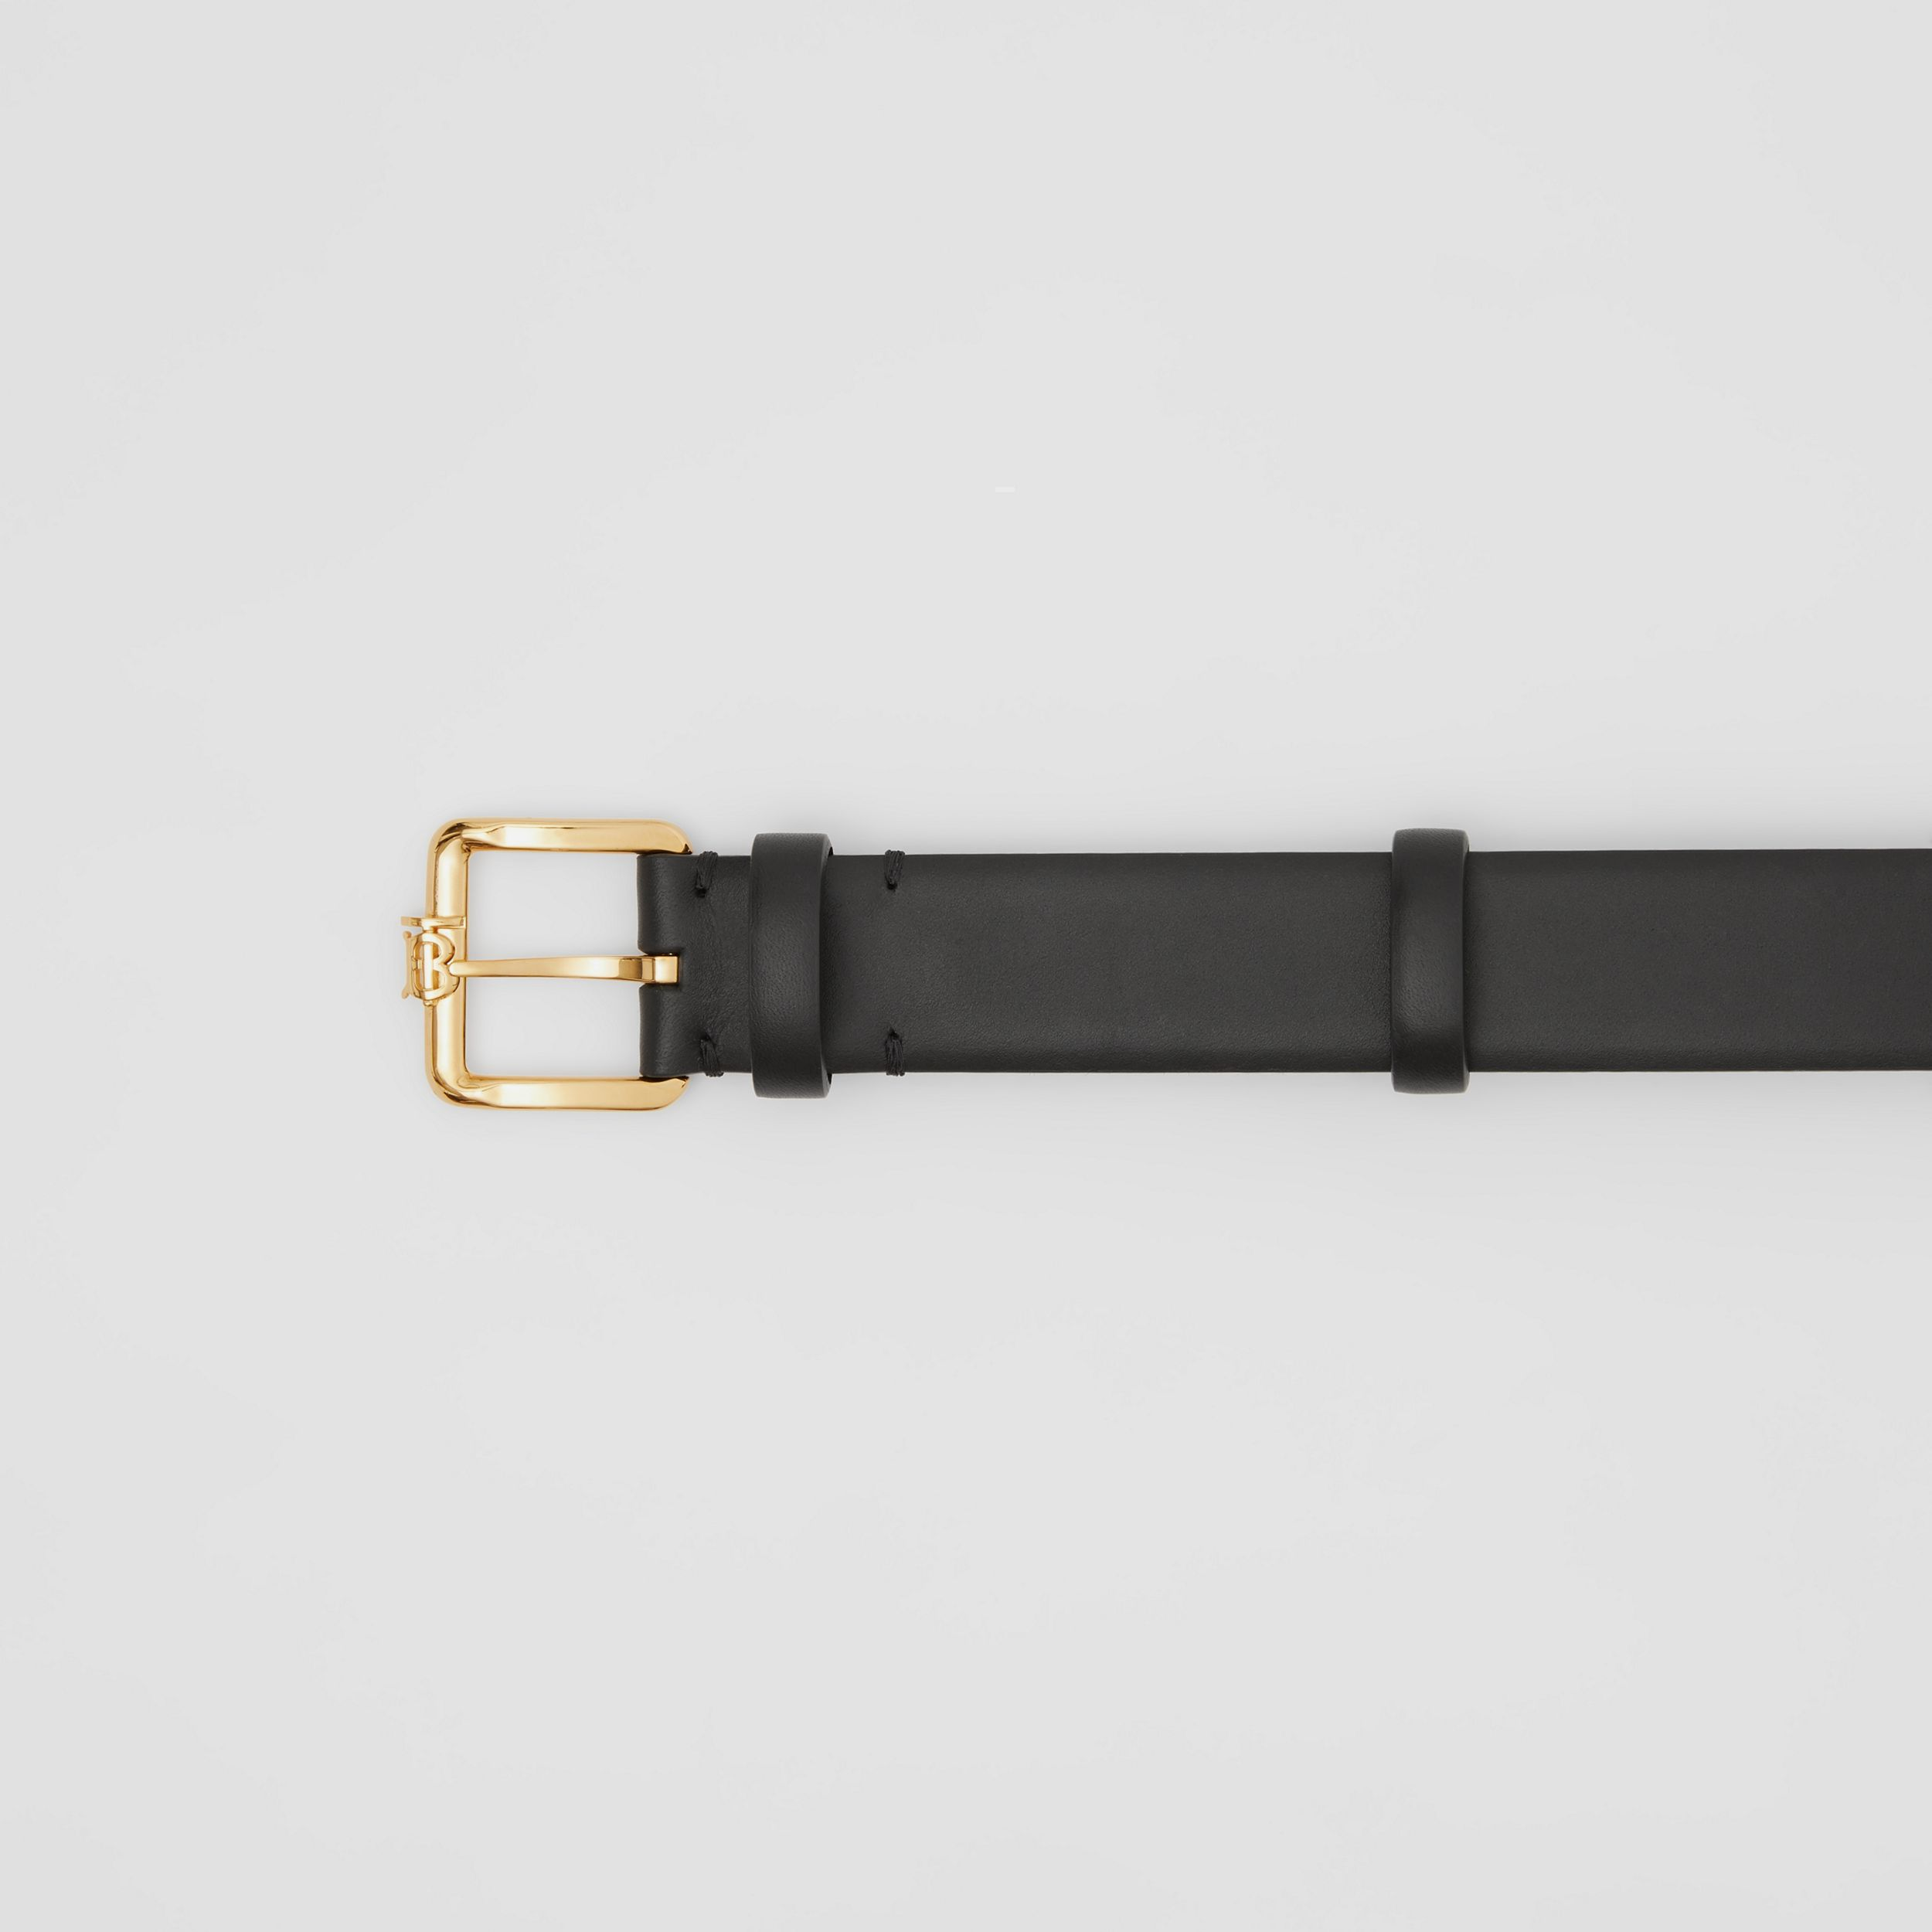 Monogram Motif Leather Belt in Black - Women | Burberry - 2